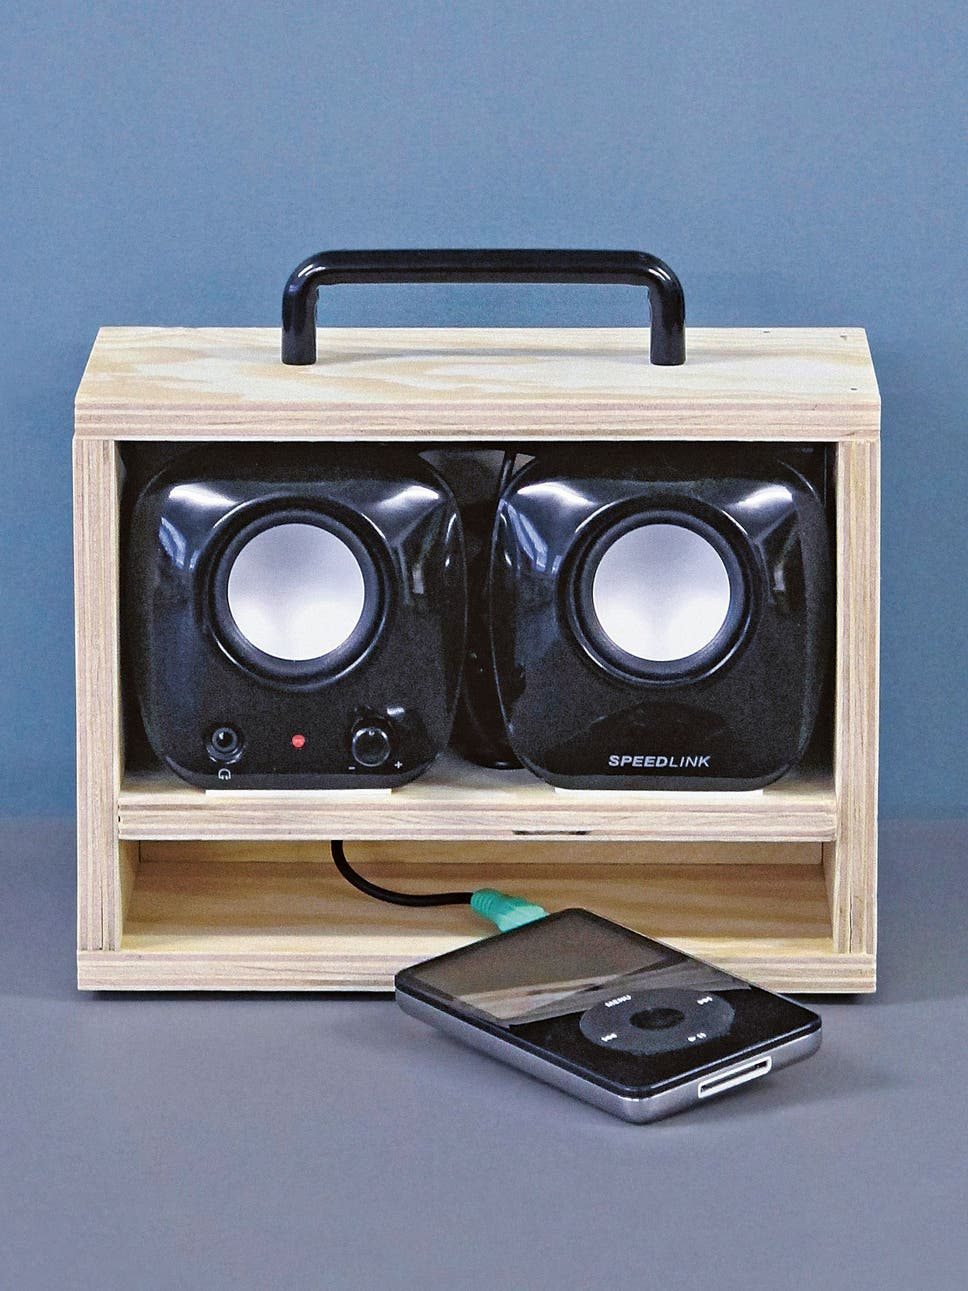 How to build a design classic leading craftsmen construct five boombox konstantin grcic wanted to produce something raw and cobbled together that would contrast solutioingenieria Gallery